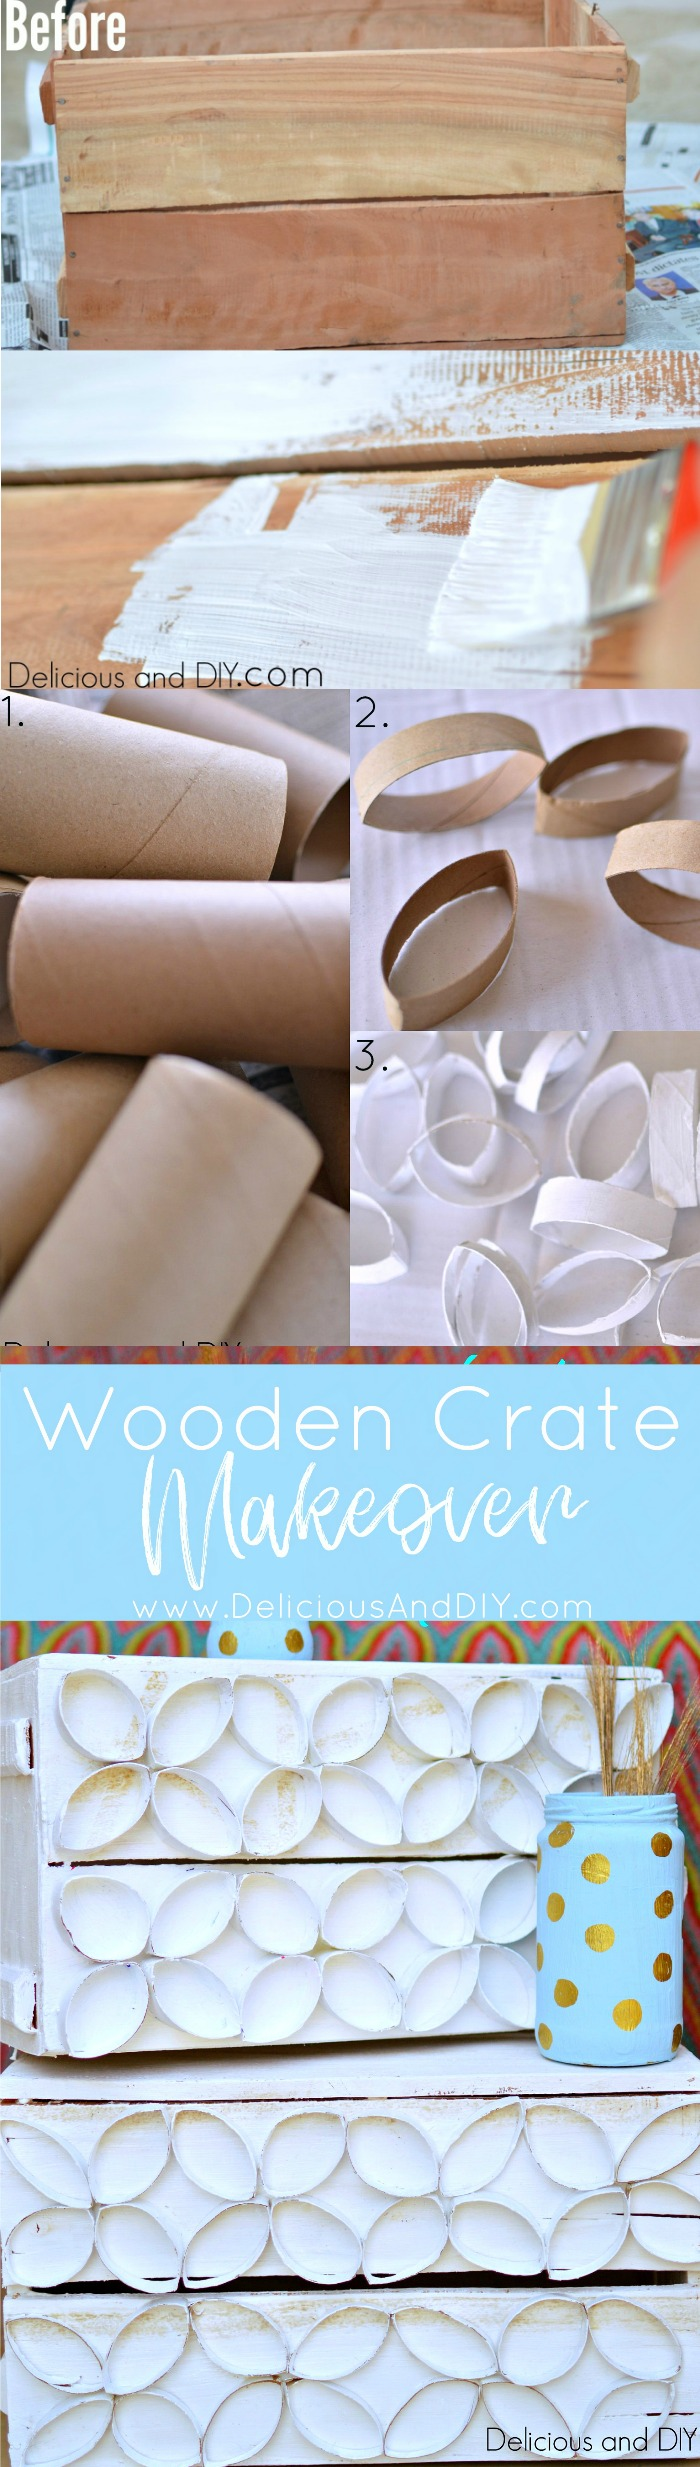 Wooden Crate Makeover using Toilet Paper Roll| TP Roll Projects| Wooden Crate Makeover| TP roll made into flowers| Recycle Crates| Repurposed Wooden Crates| TP roll projects| DIY Crafts